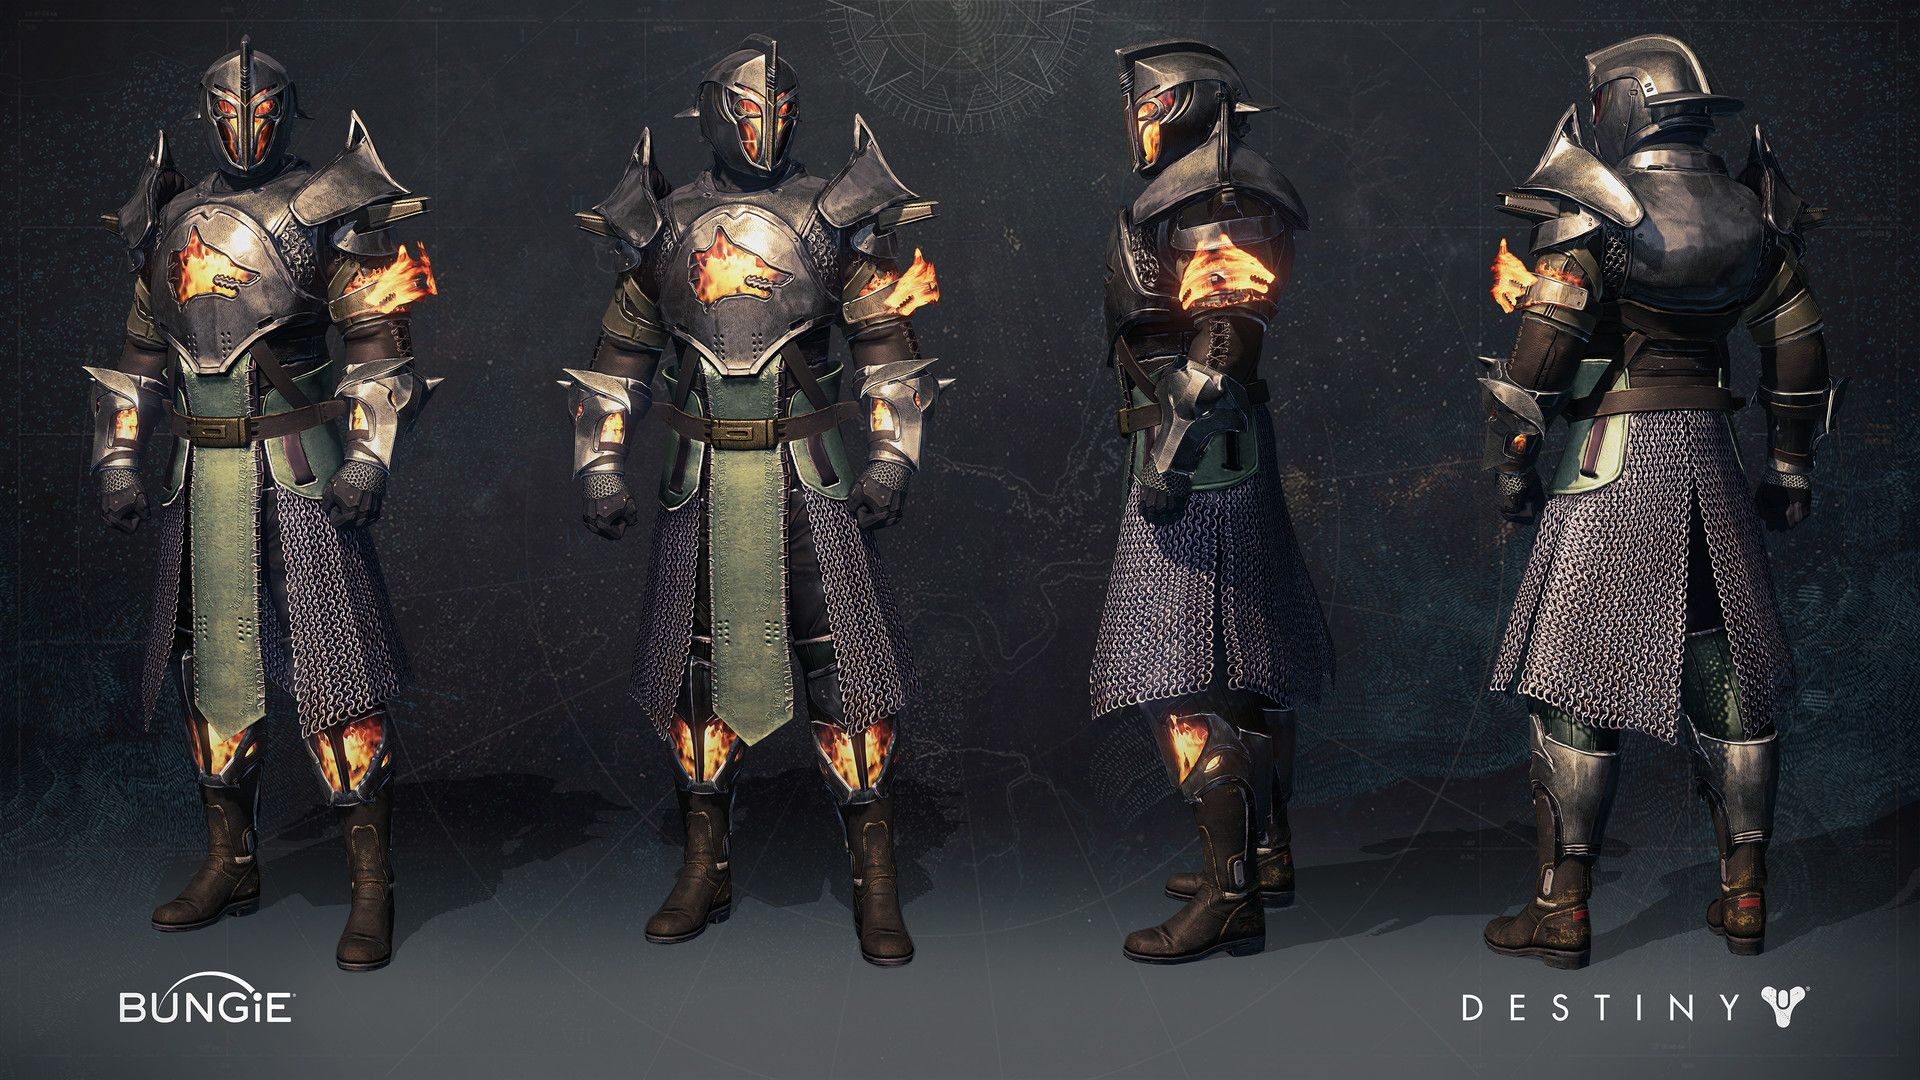 Image result for rise of iron ornaments imagesize:1920x1080